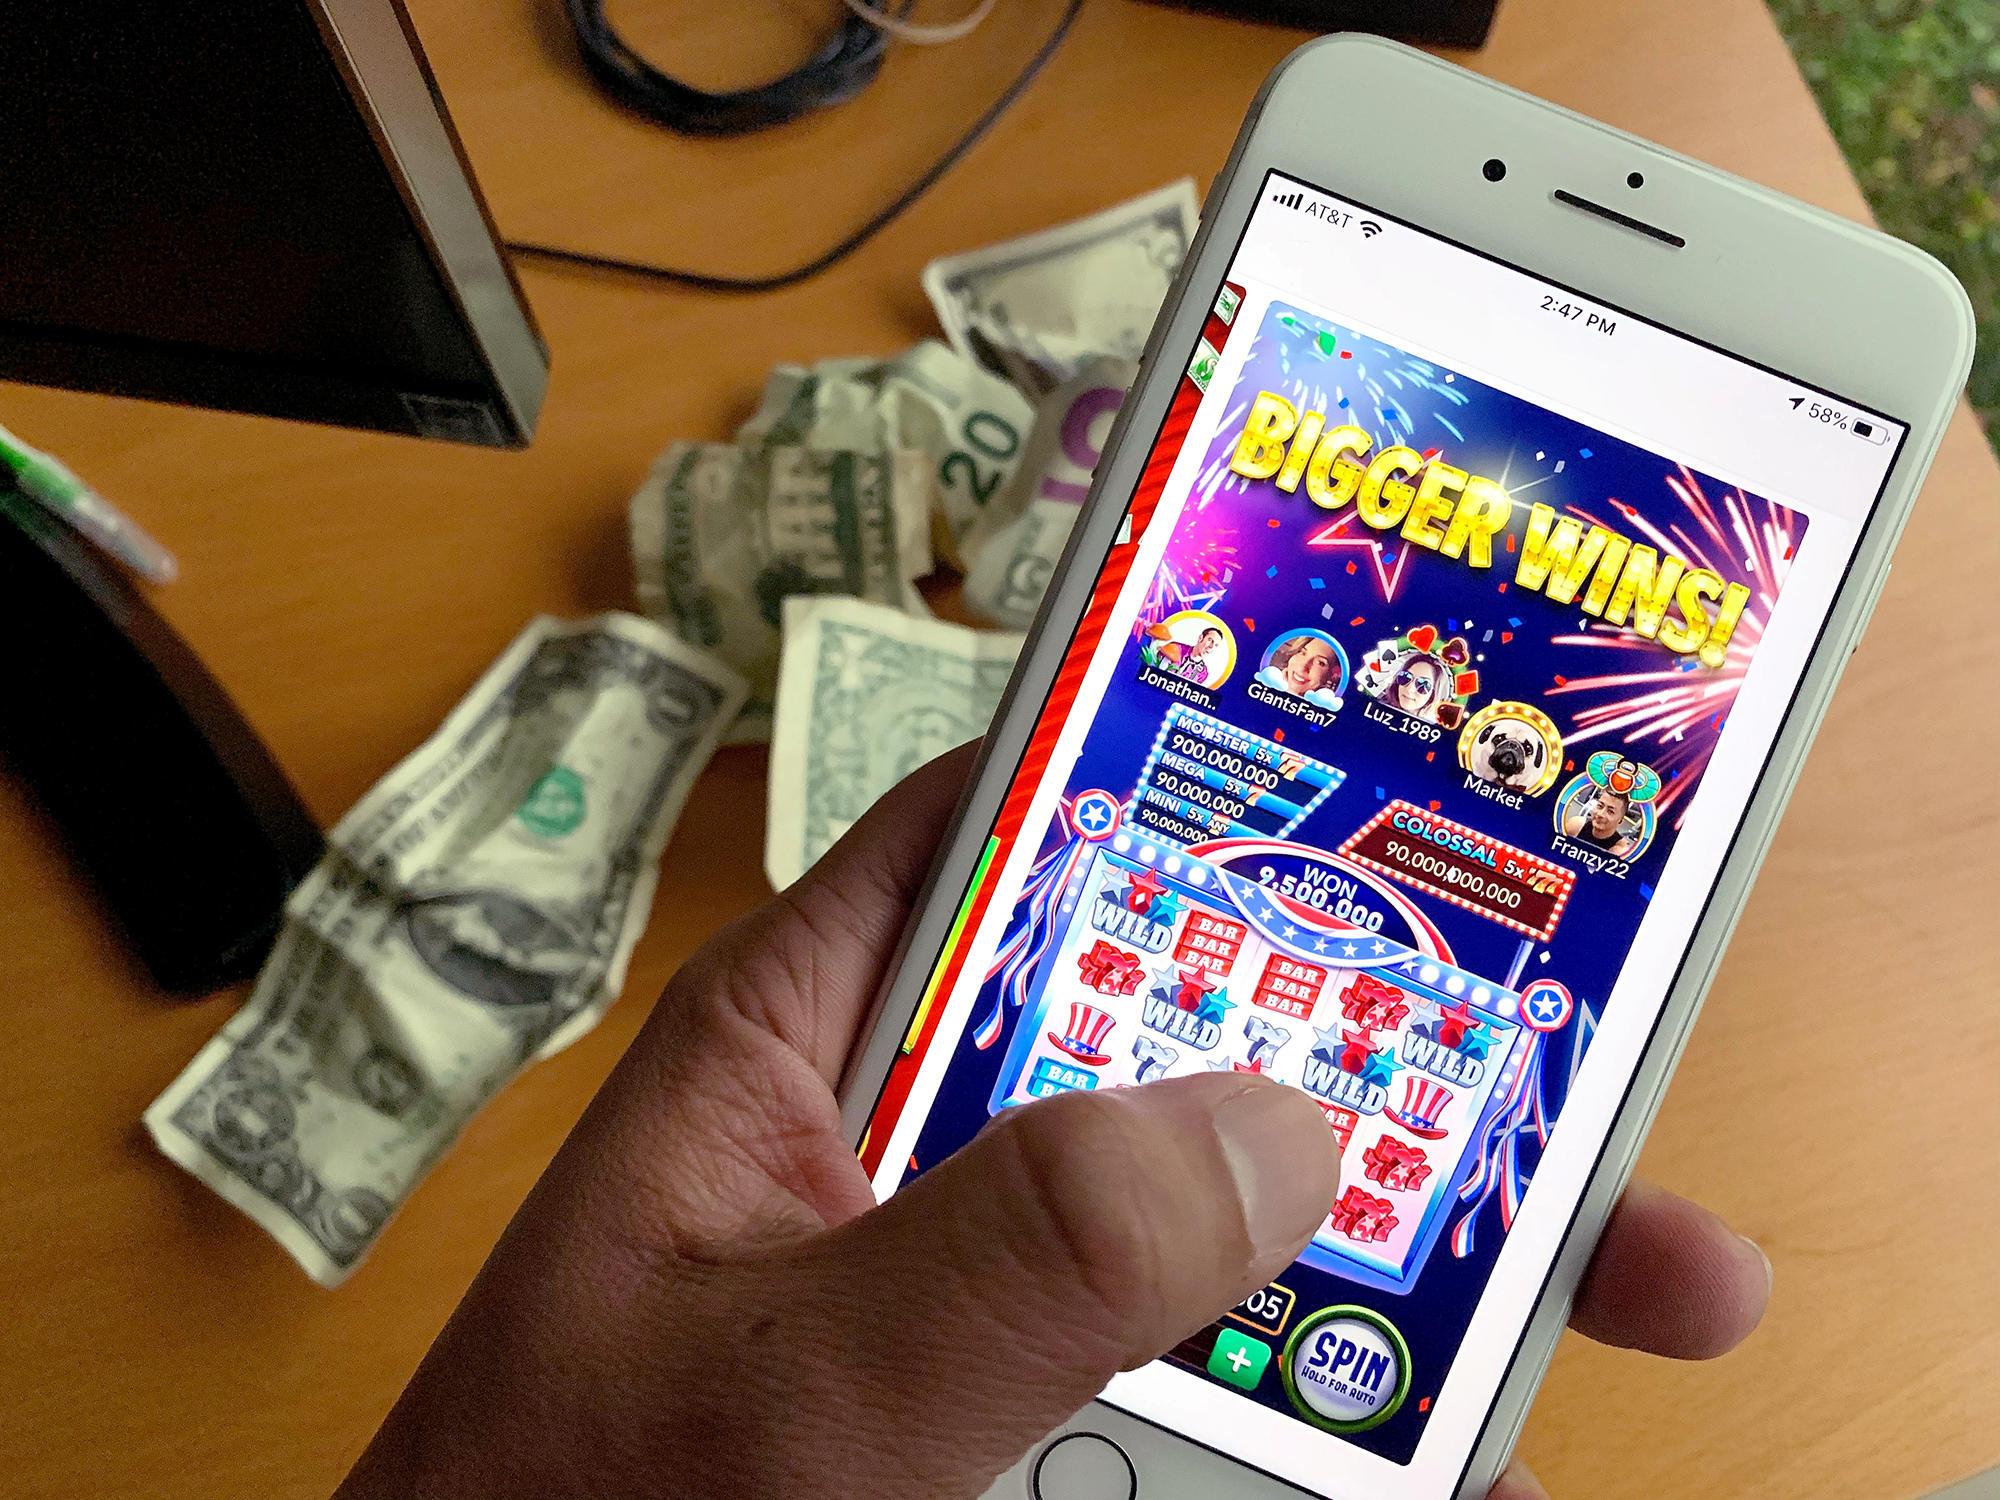 Free Casino Apps Prey On Addiction Users Say And Wa Lawmakers